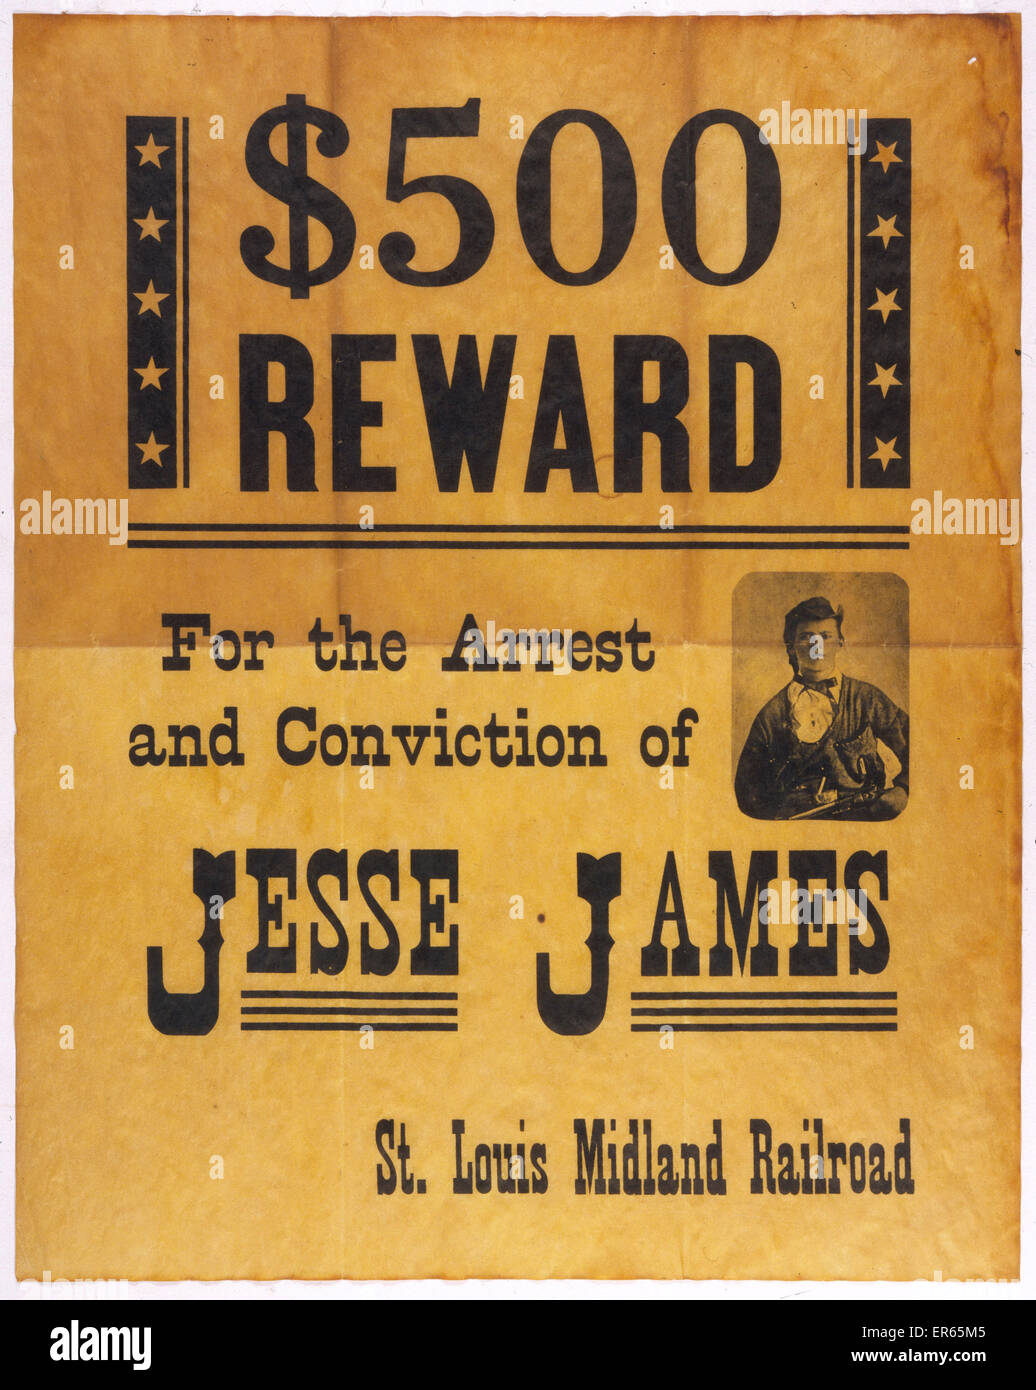 Outlaw Wanted Poster Stock Photos & Outlaw Wanted Poster Stock ...